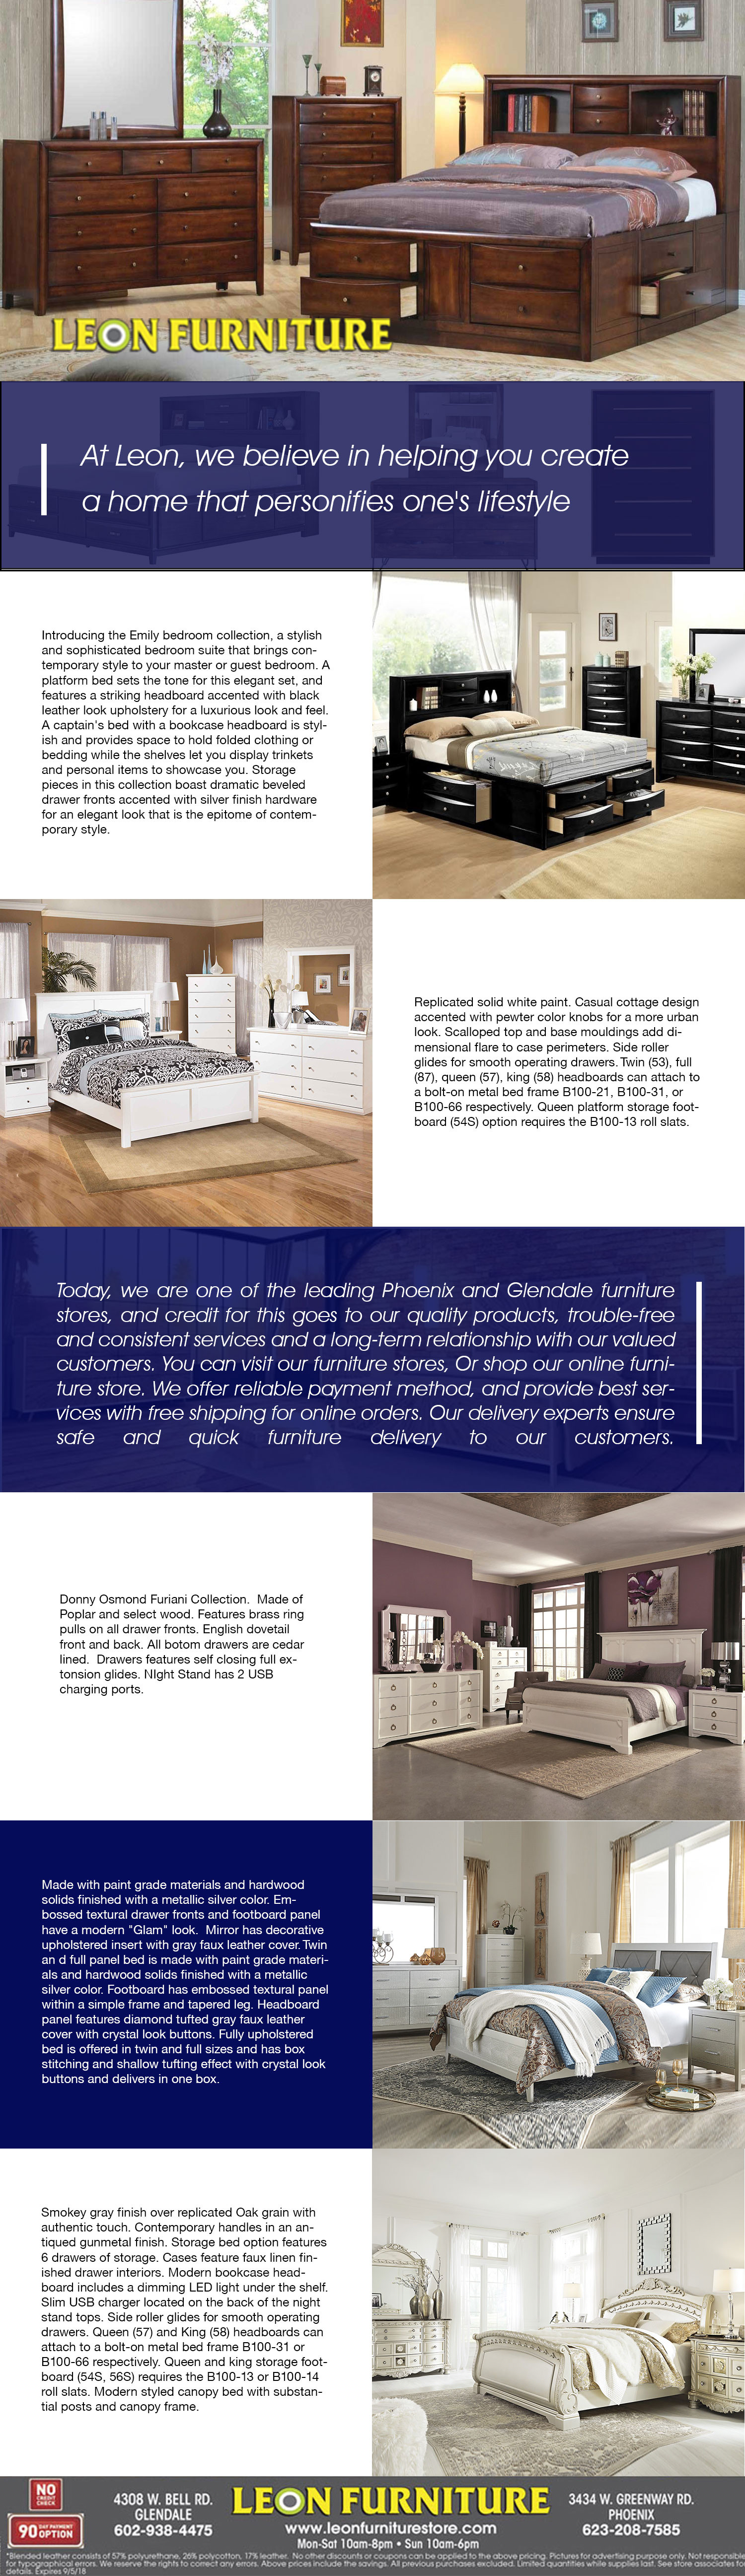 Collection Of Best Bedroom Furniture Sets in Arizona Infographic